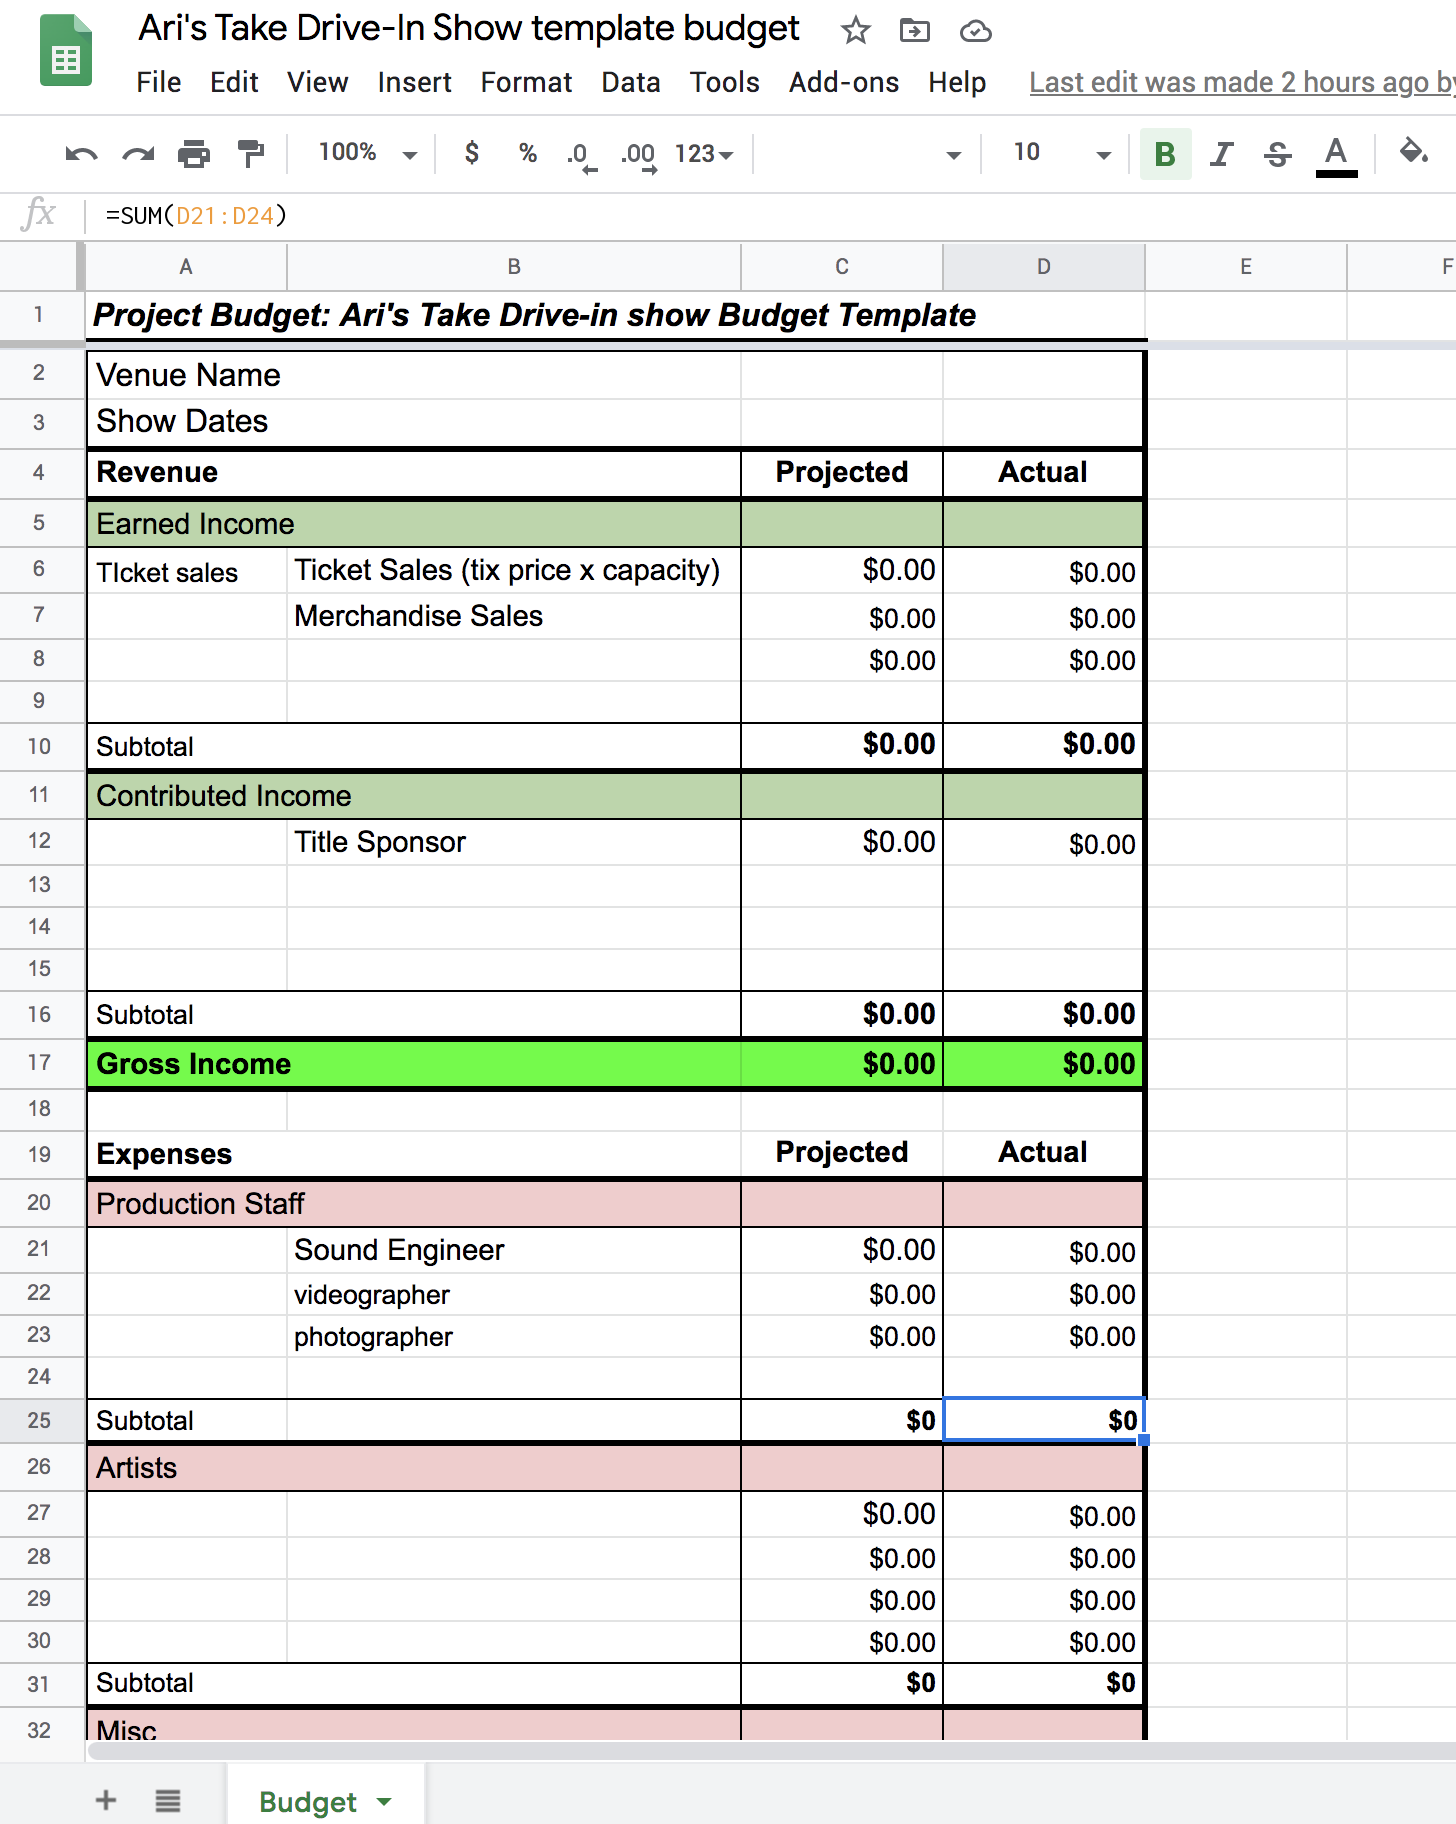 screenshot of a Google Spreadsheet budget